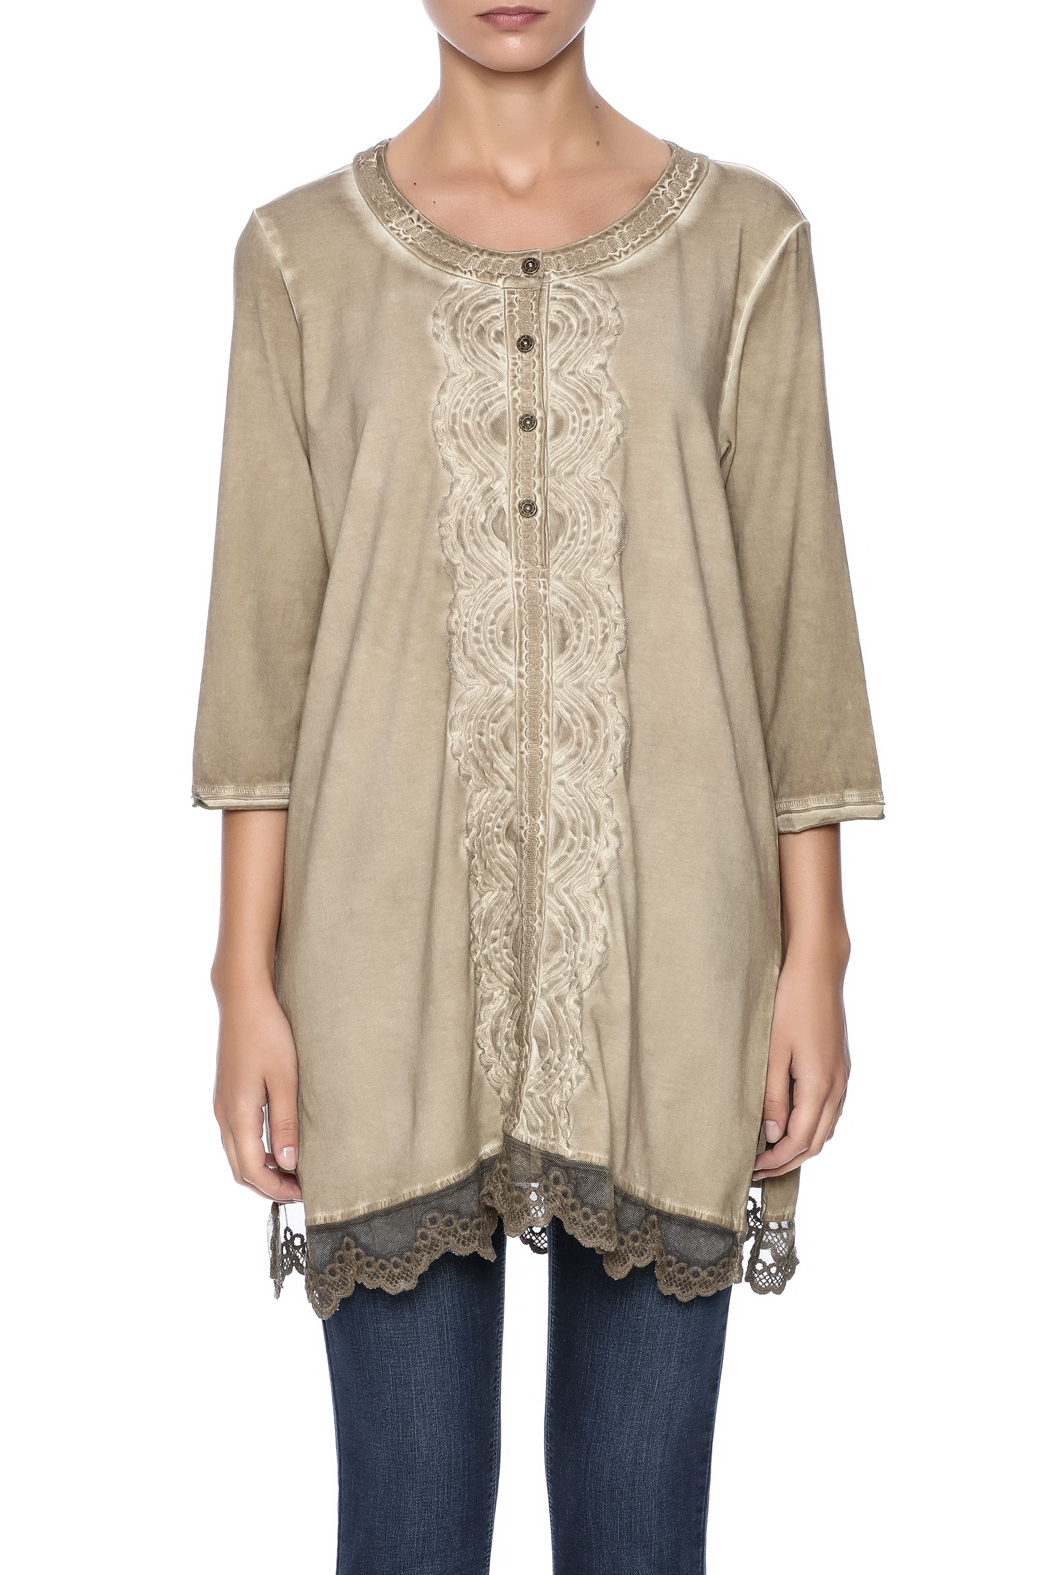 Gretty Zuegar Embroidered Sand Tunic - Side Cropped Image